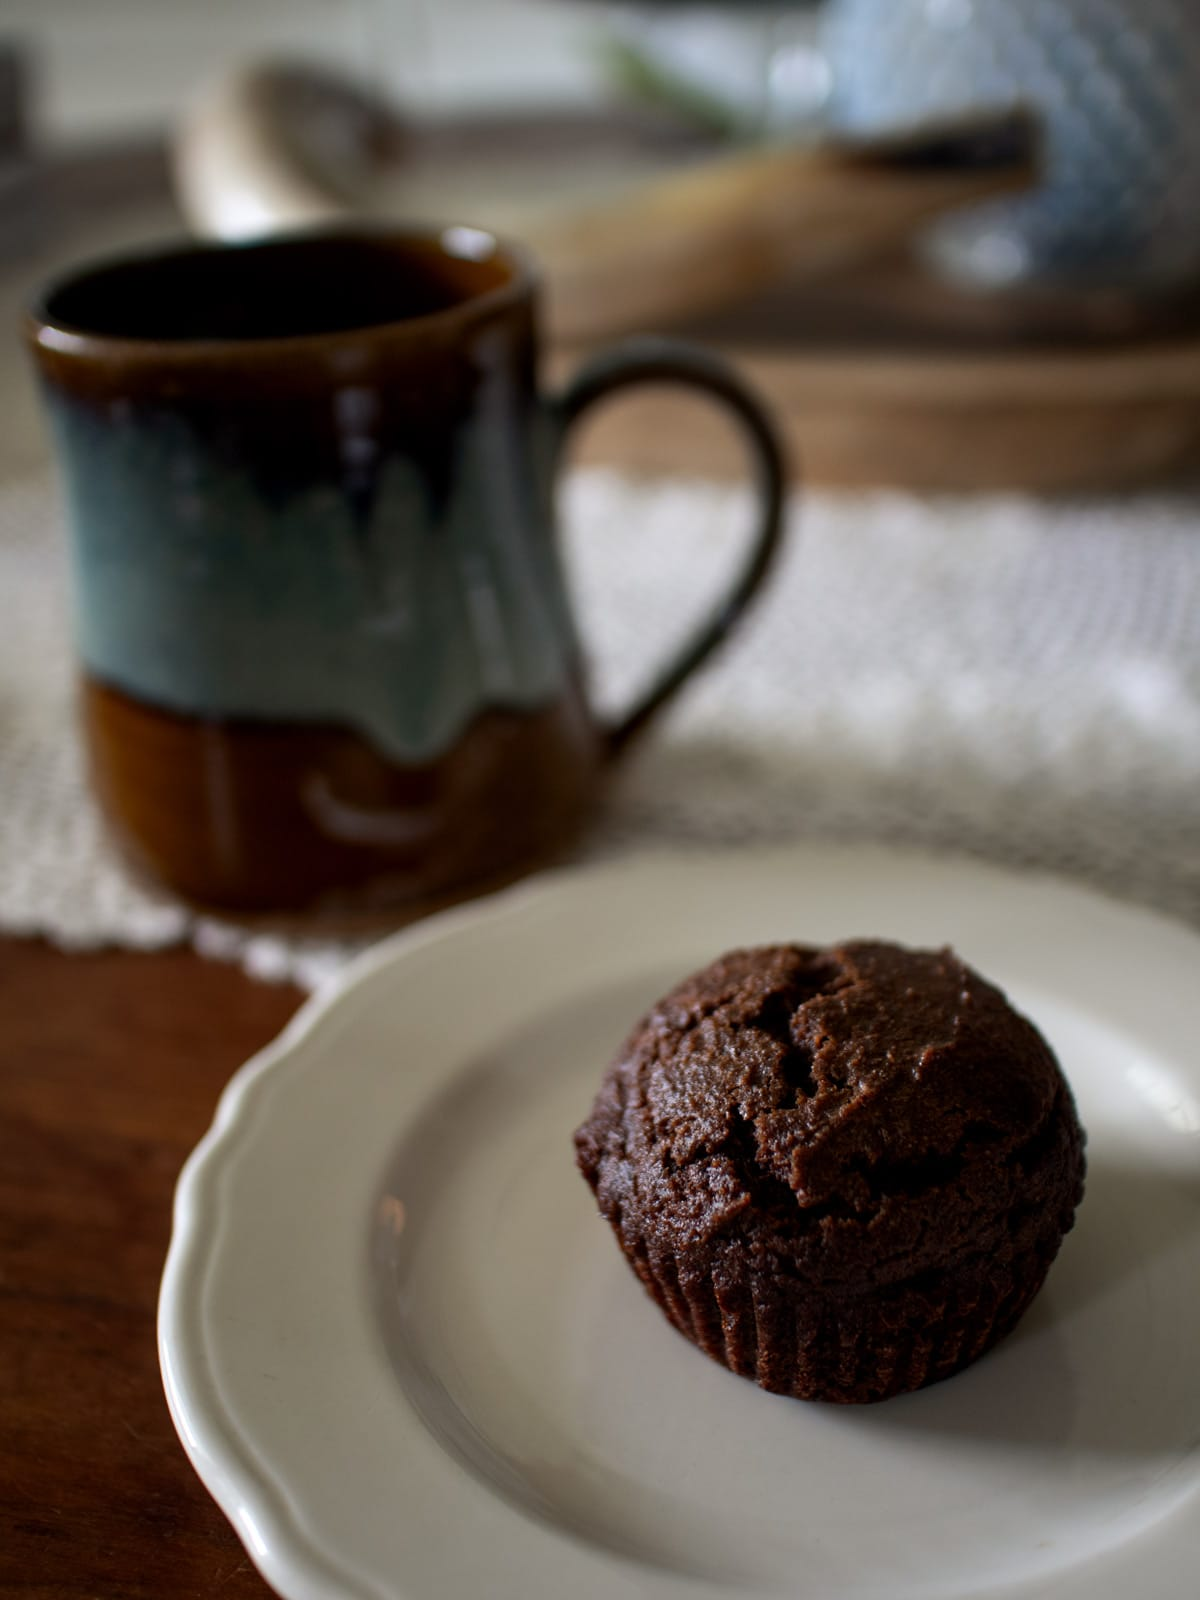 Cranberry Chocolate Muffins - These delicious muffins are dotted with dried cranberries and filled with rich, chocolate flavor.